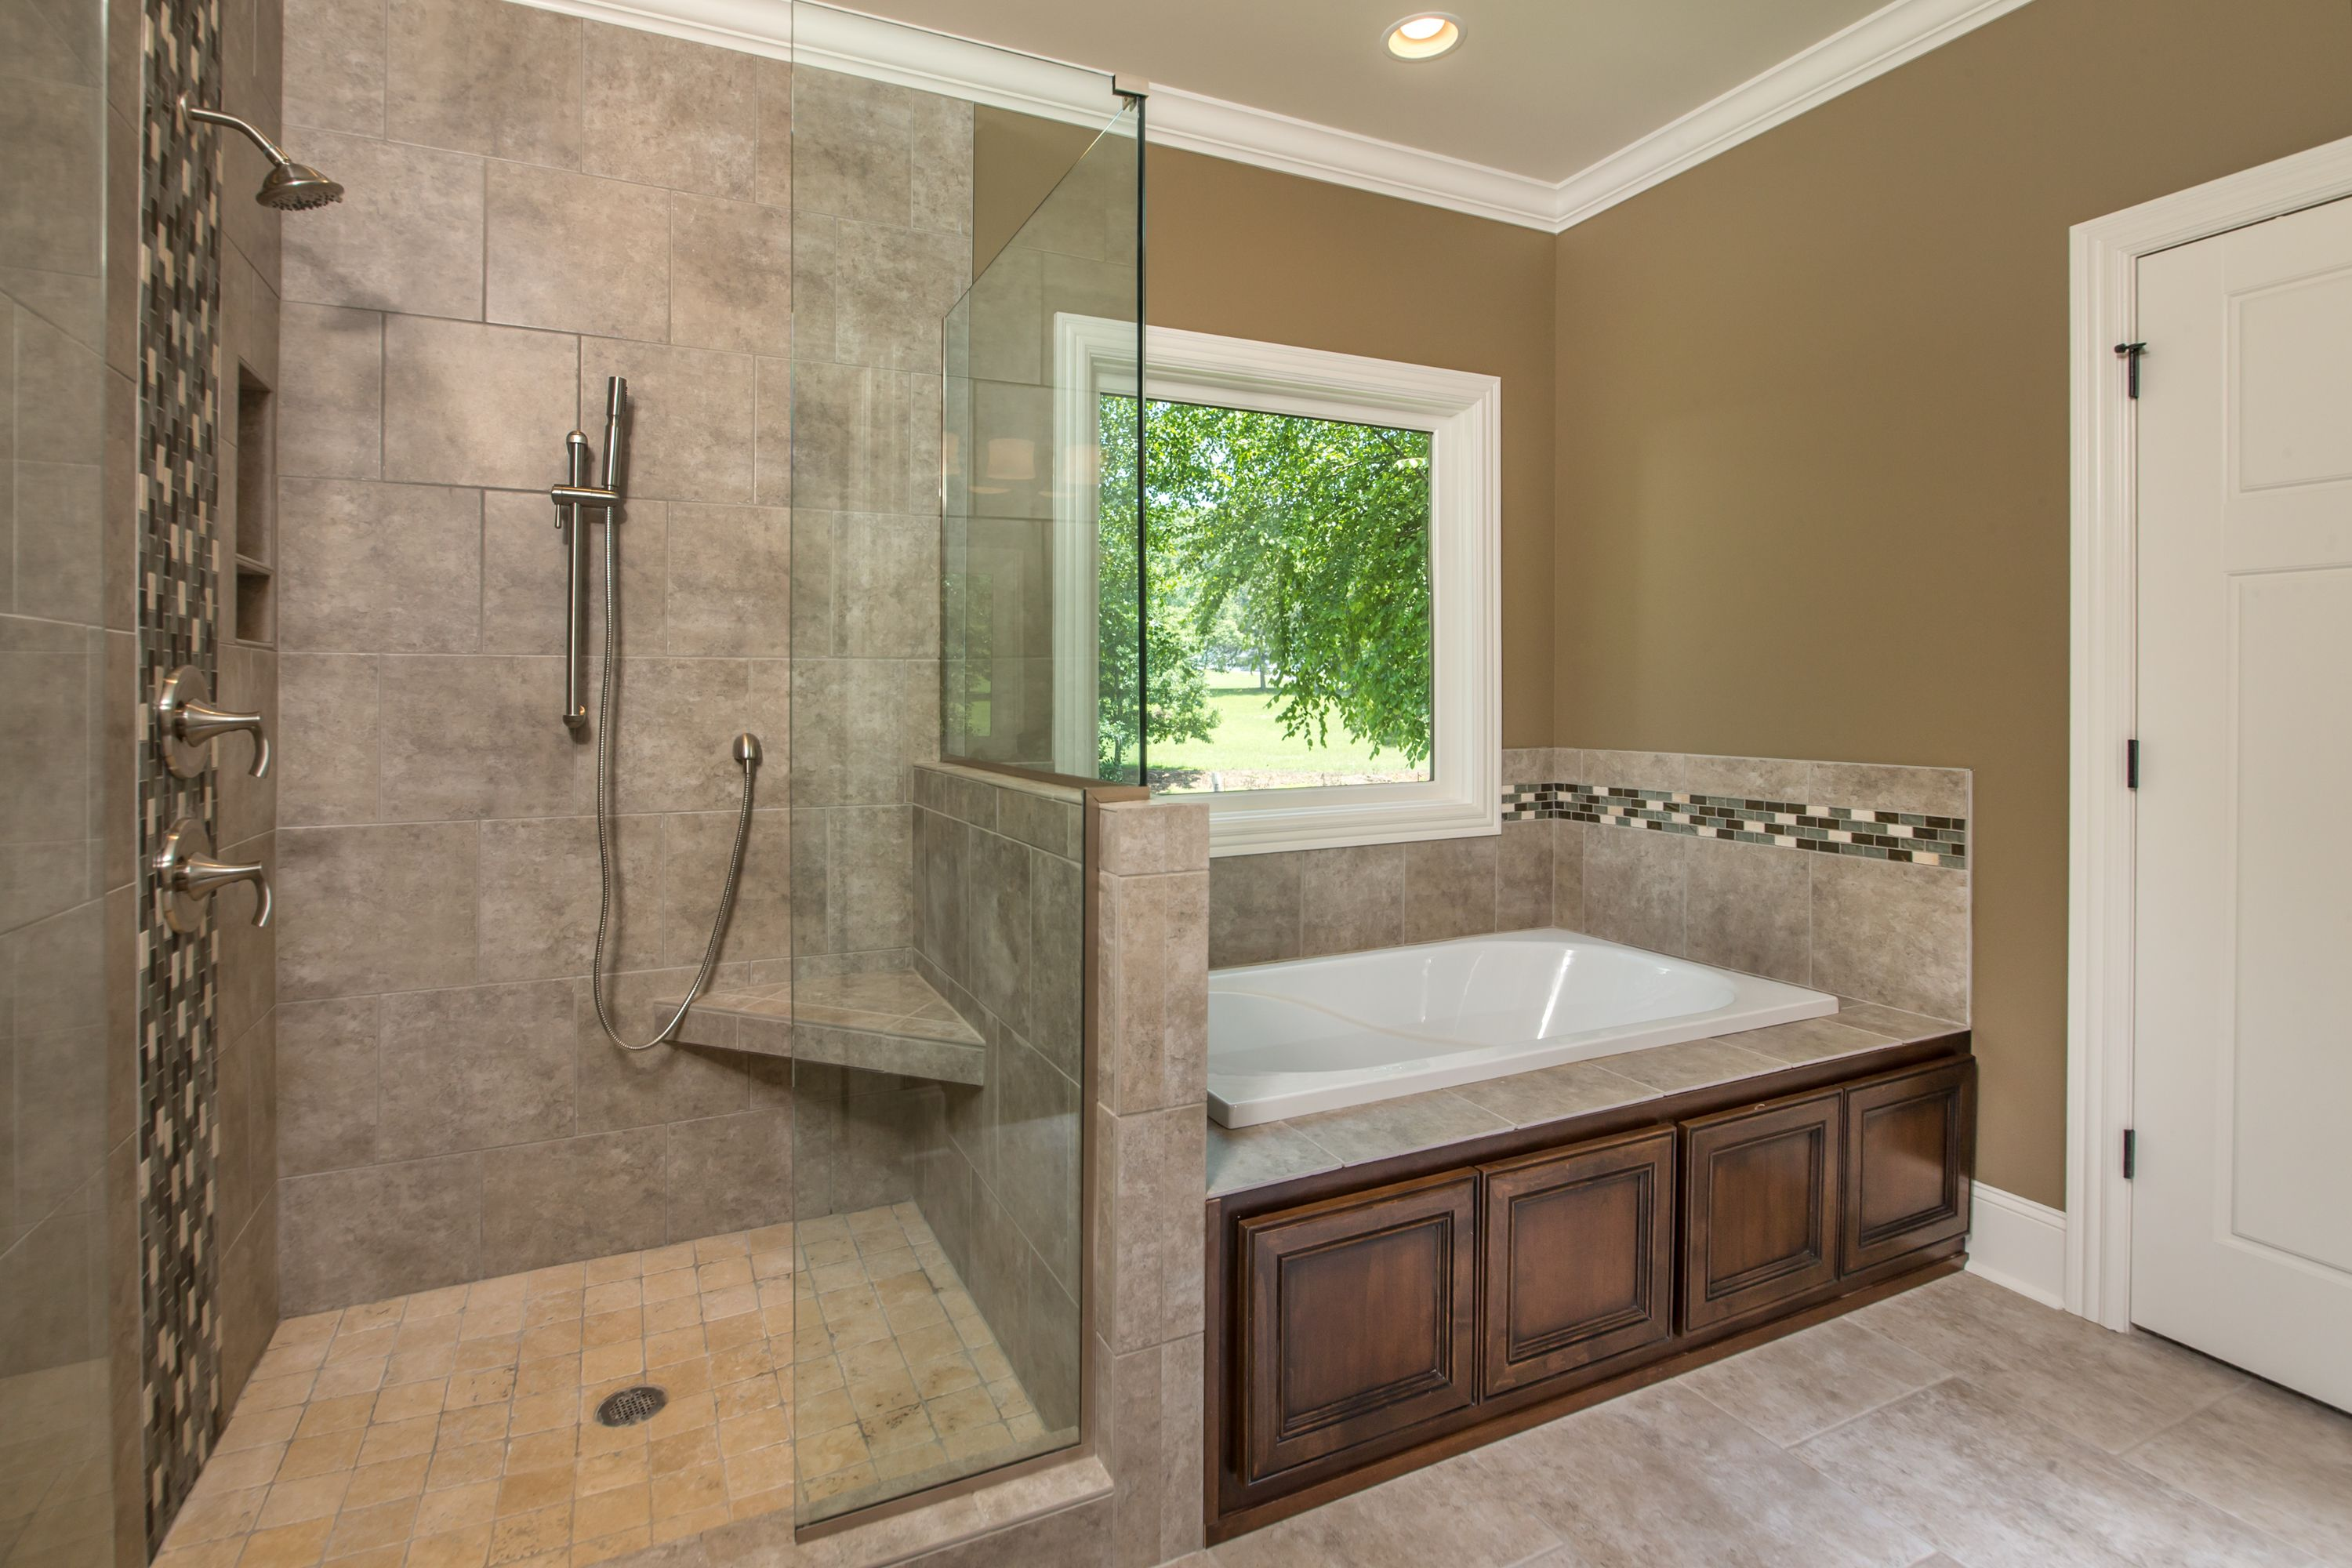 Master Bath Featuring A Garden Tub And Large Tiled Shower In Our